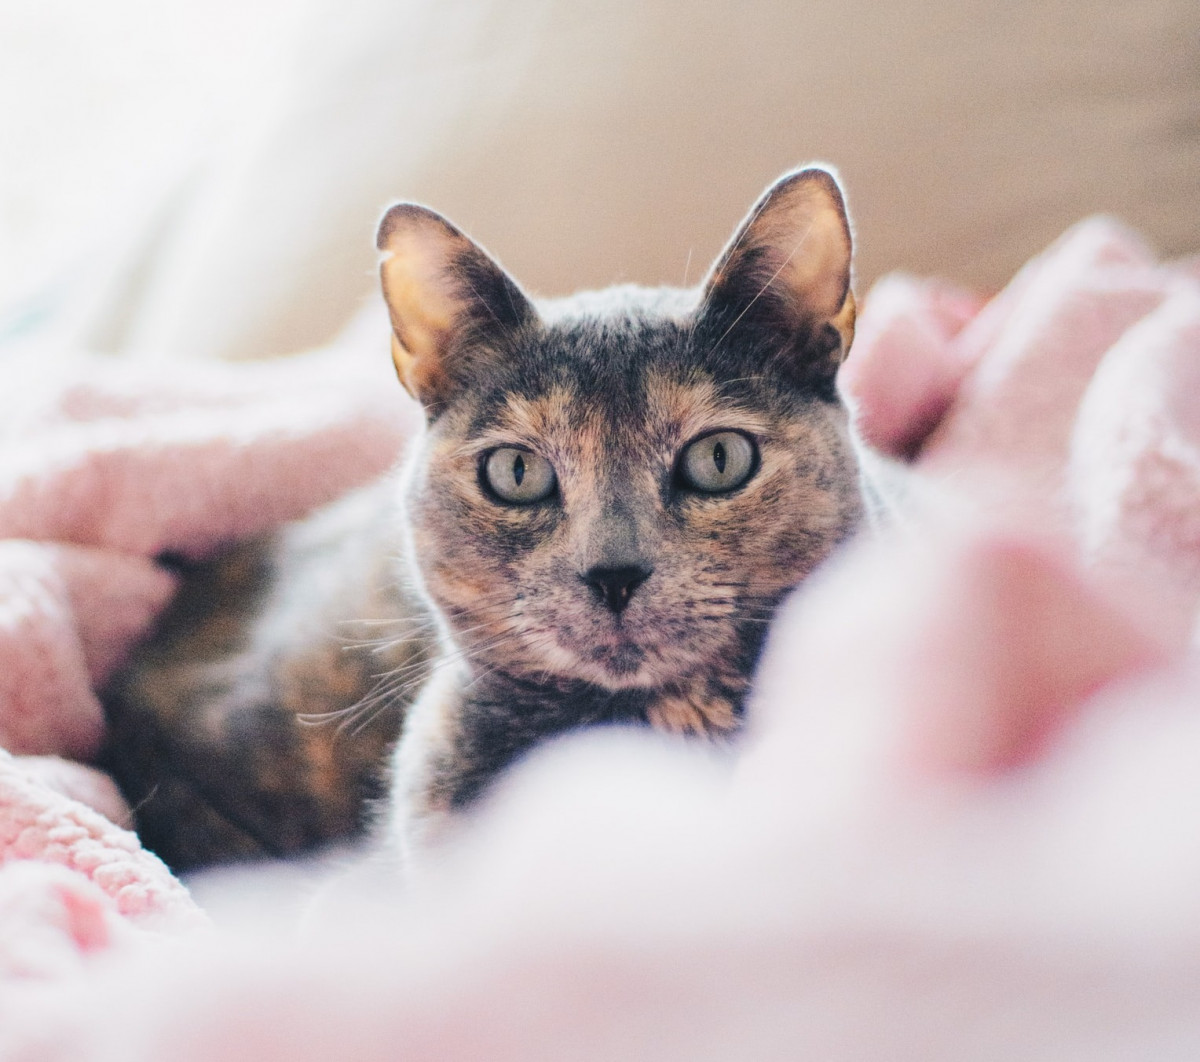 Cute tortoiseshell cat with green eyes in a pink blanket